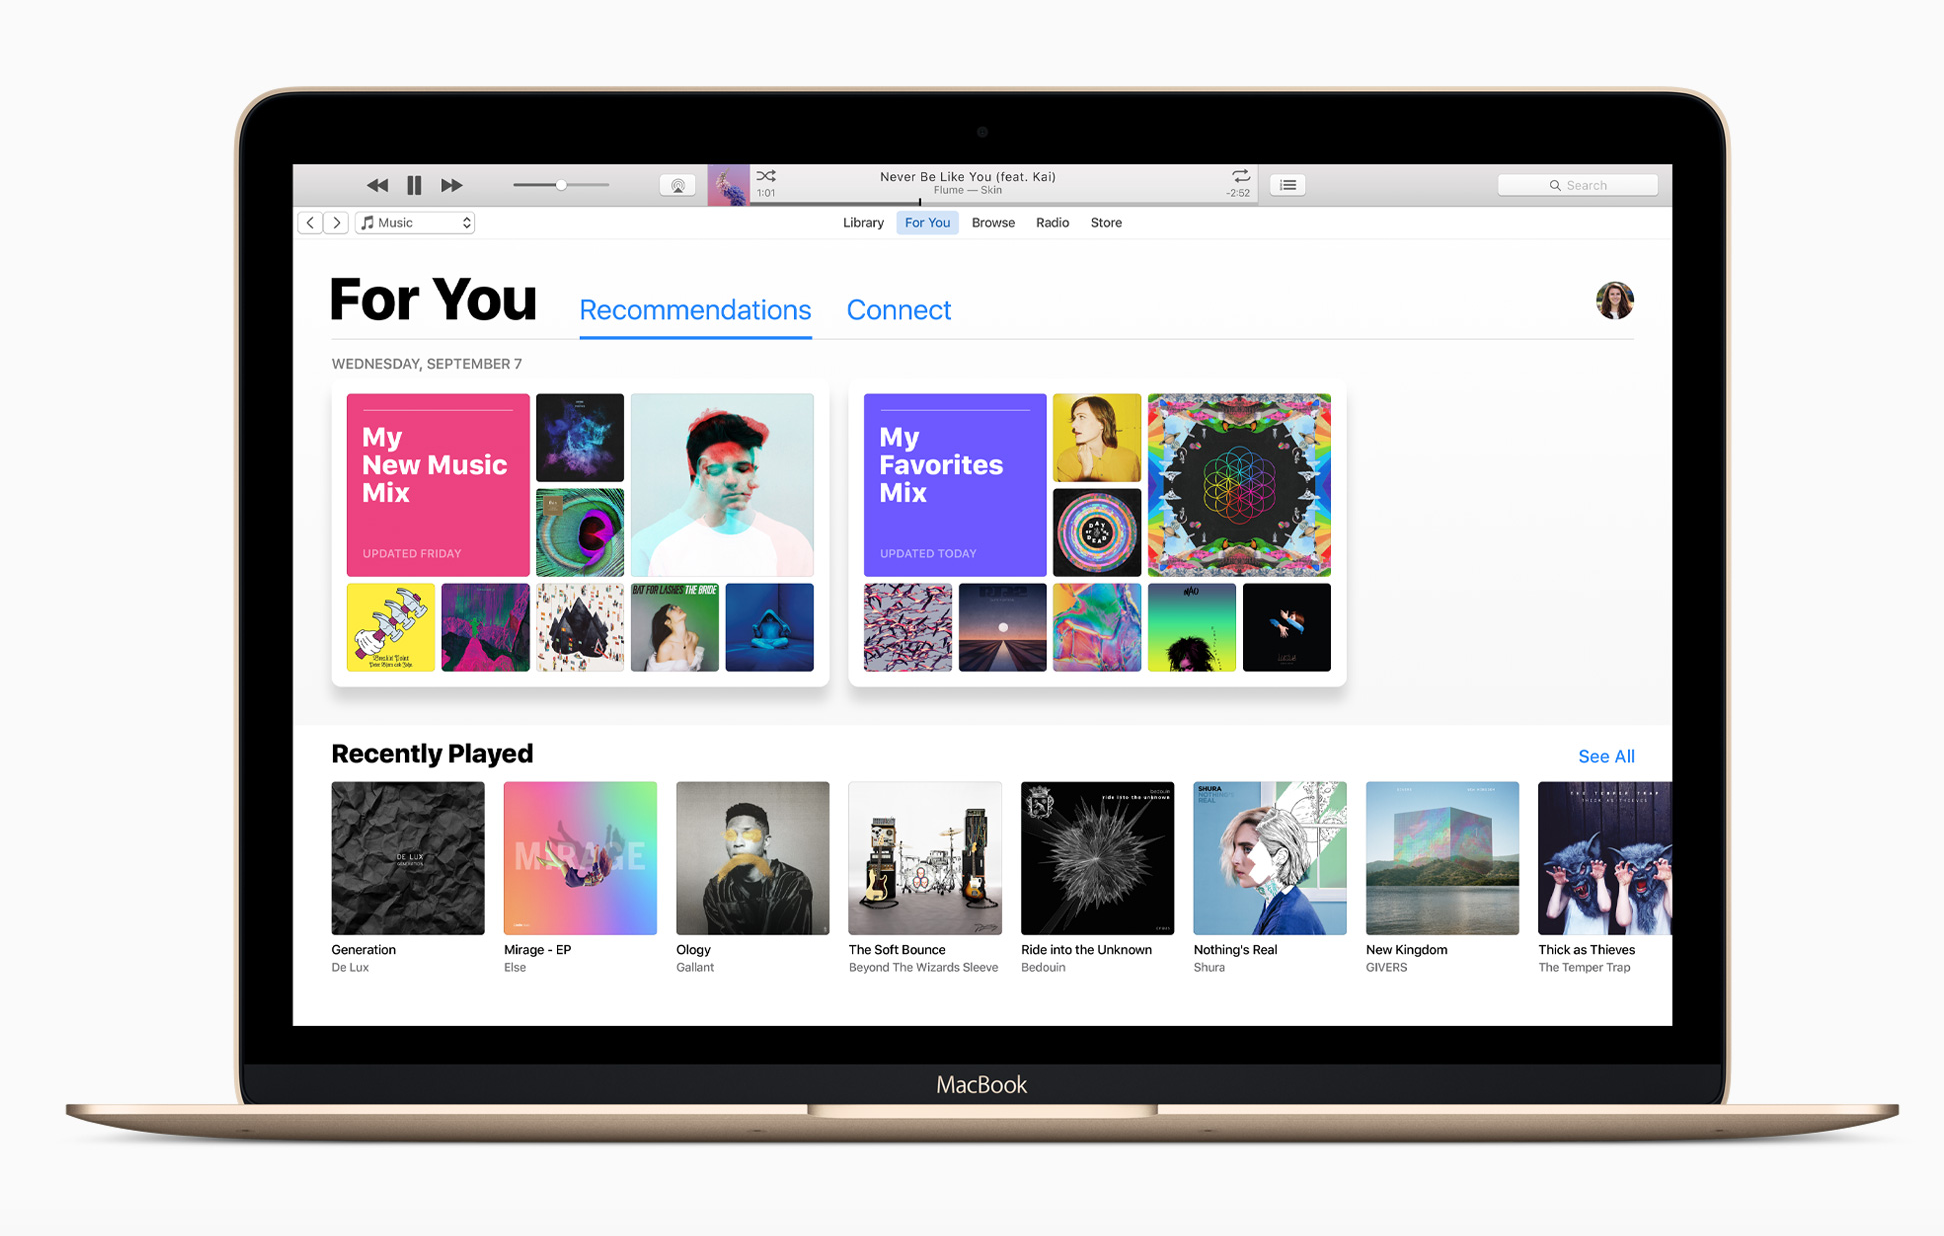 Redesigned version of iTunes launches with iCloud Music glitches